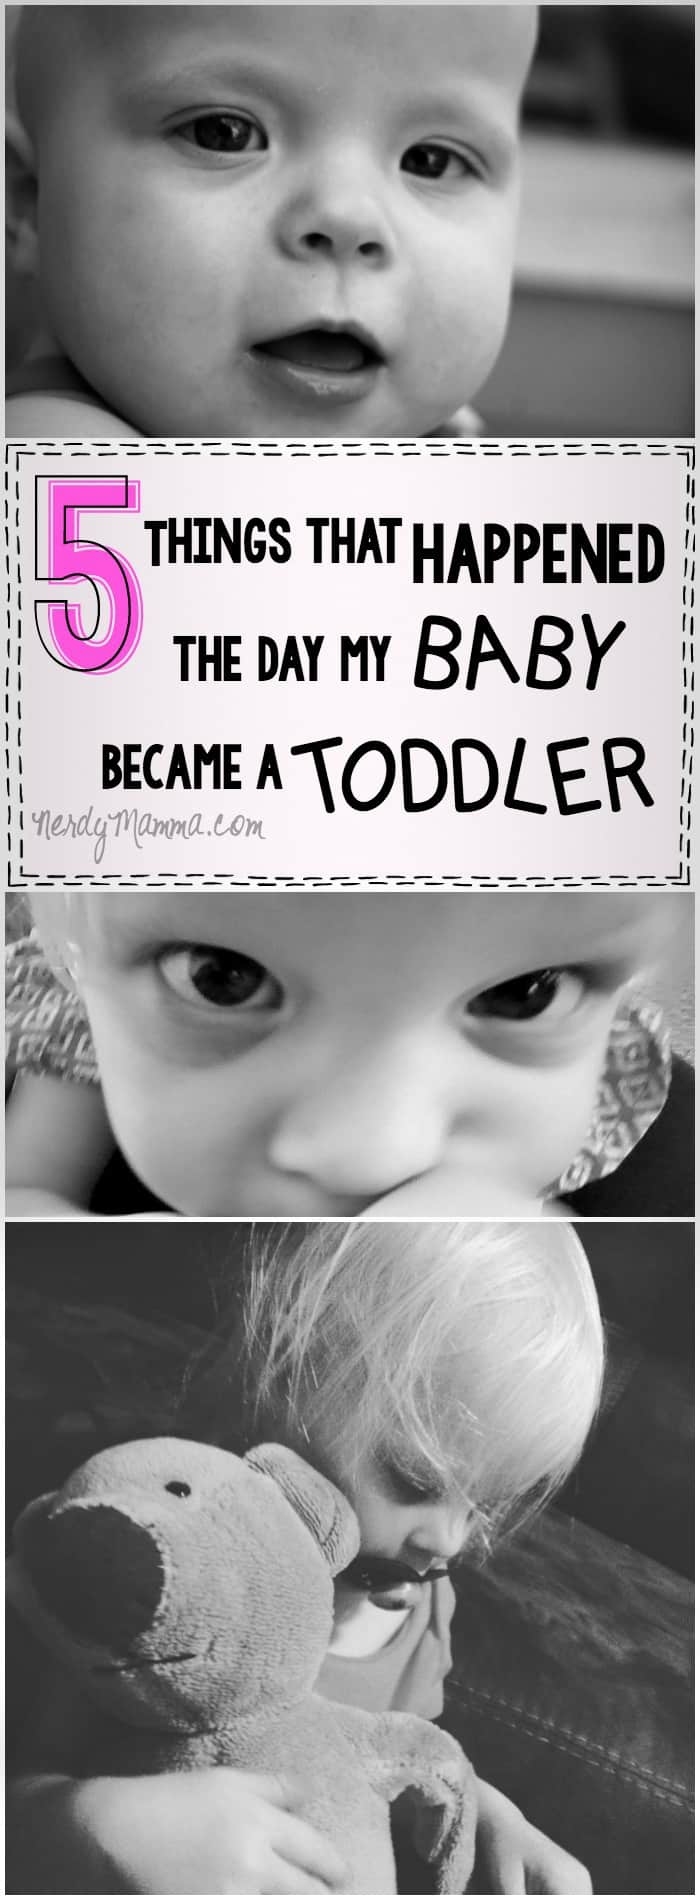 I love this cute homage to the things that happen when babies turn into toddlers! So cute how gushy this mom is...